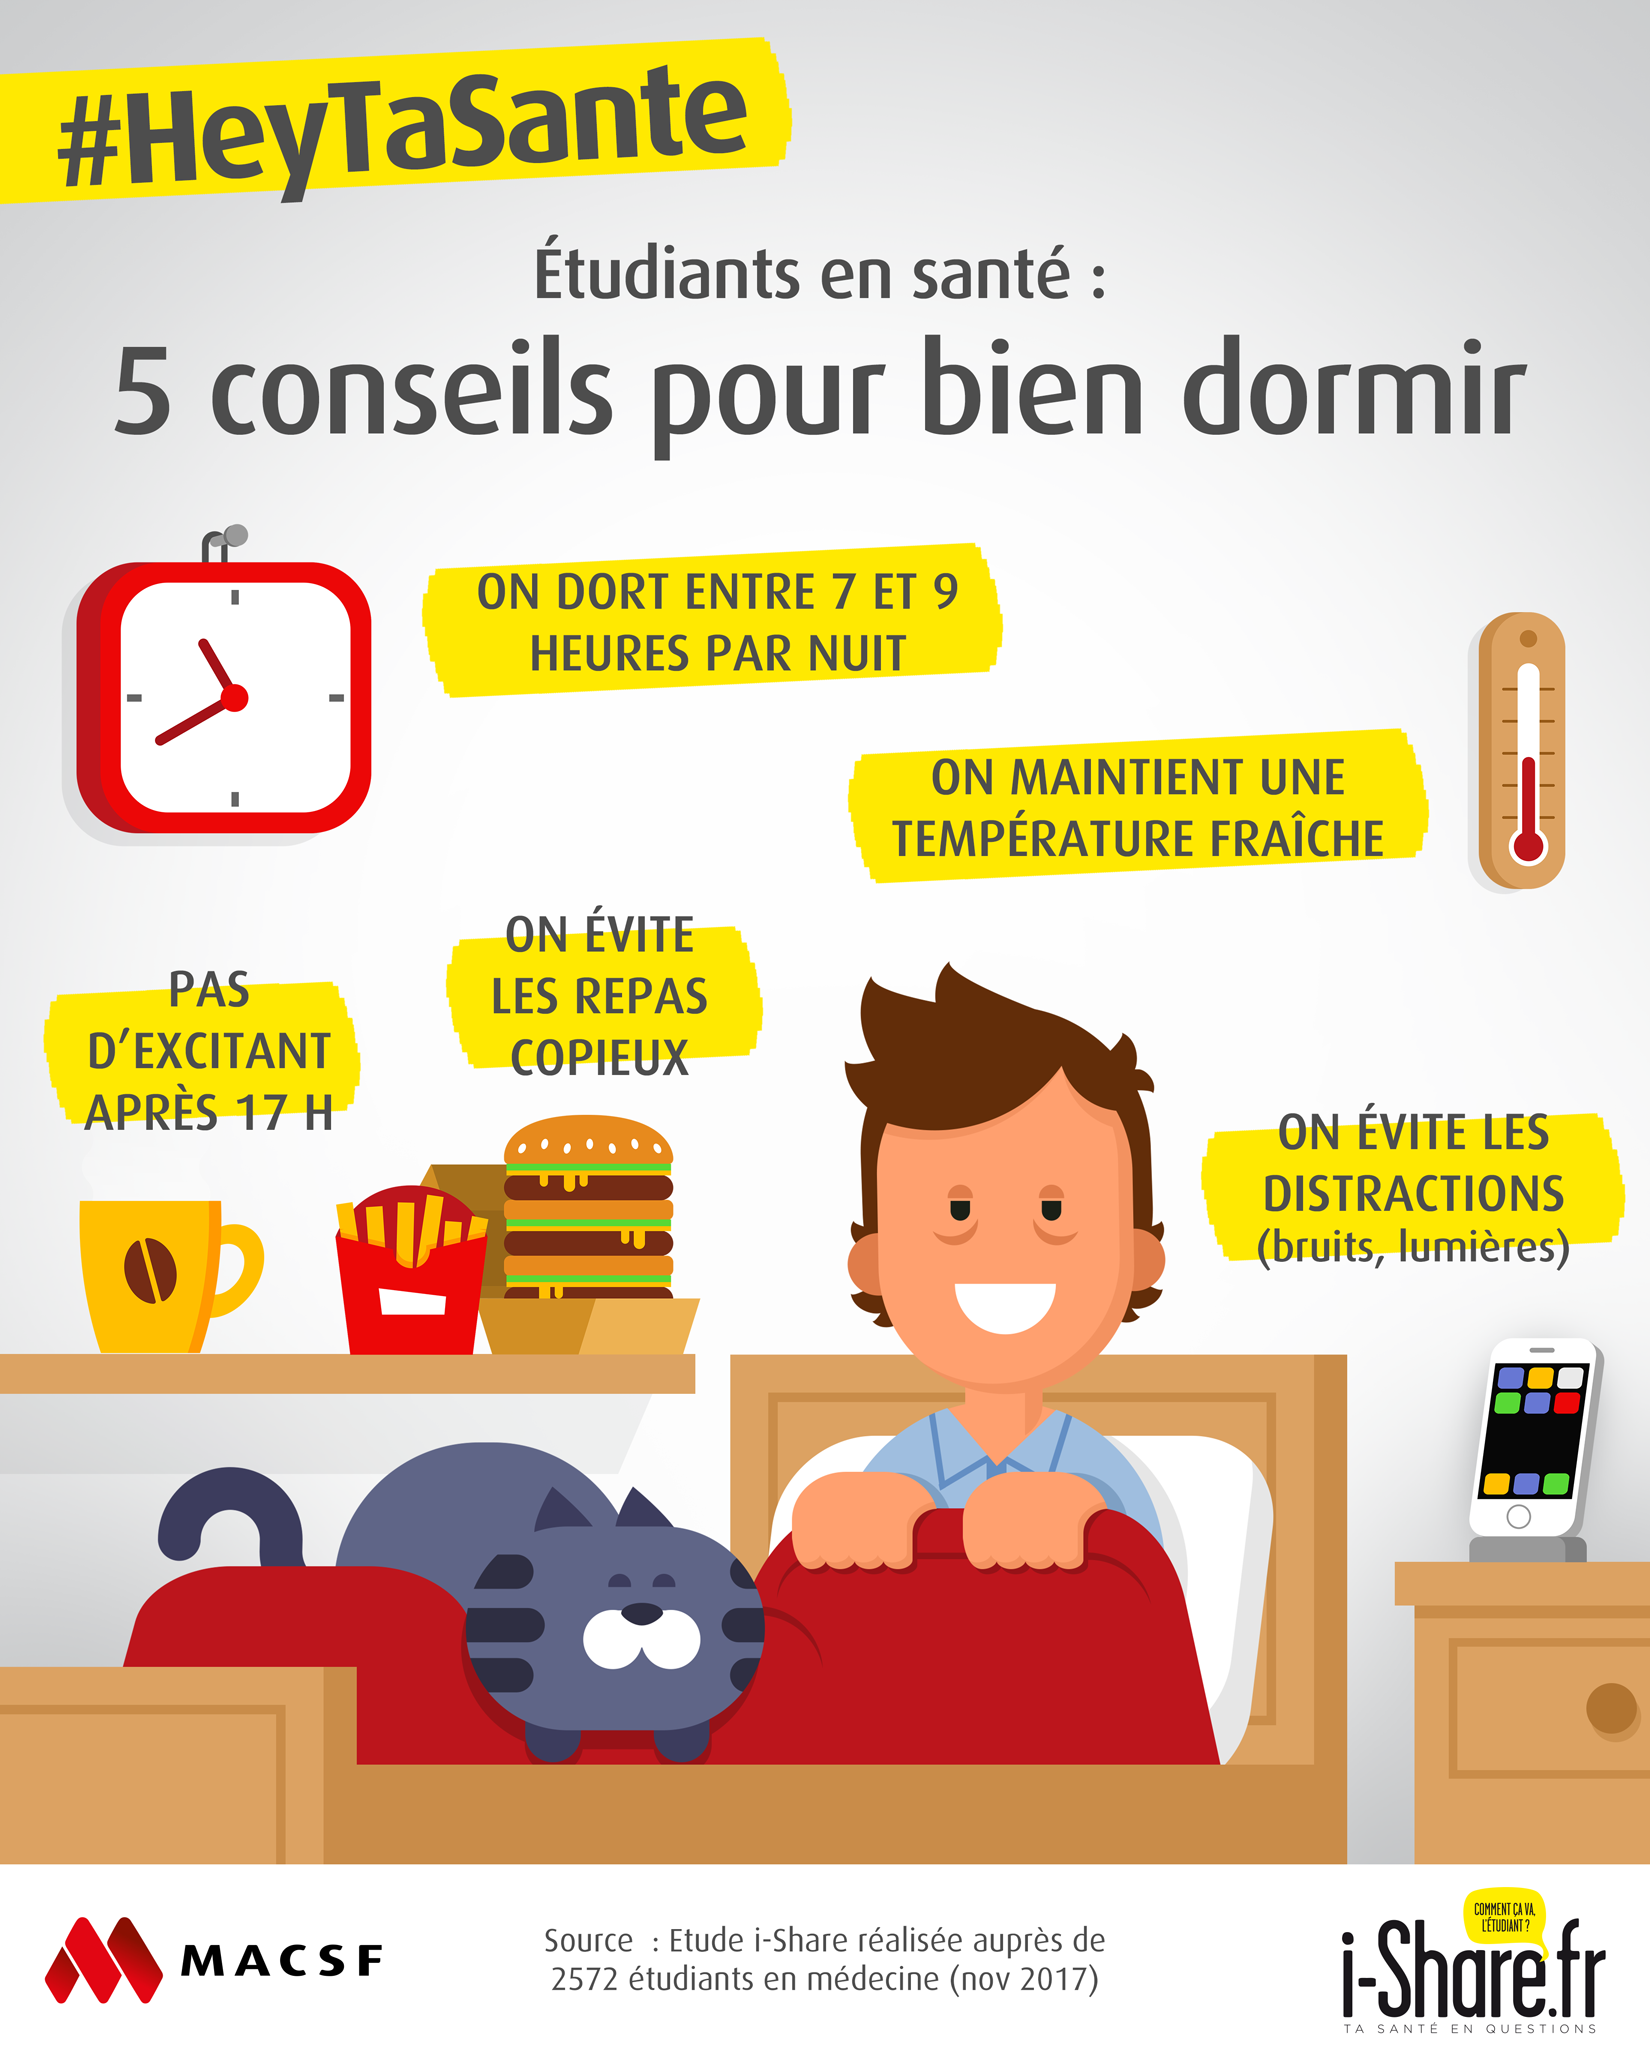 5 conseils pour bien dormir. Black Bedroom Furniture Sets. Home Design Ideas